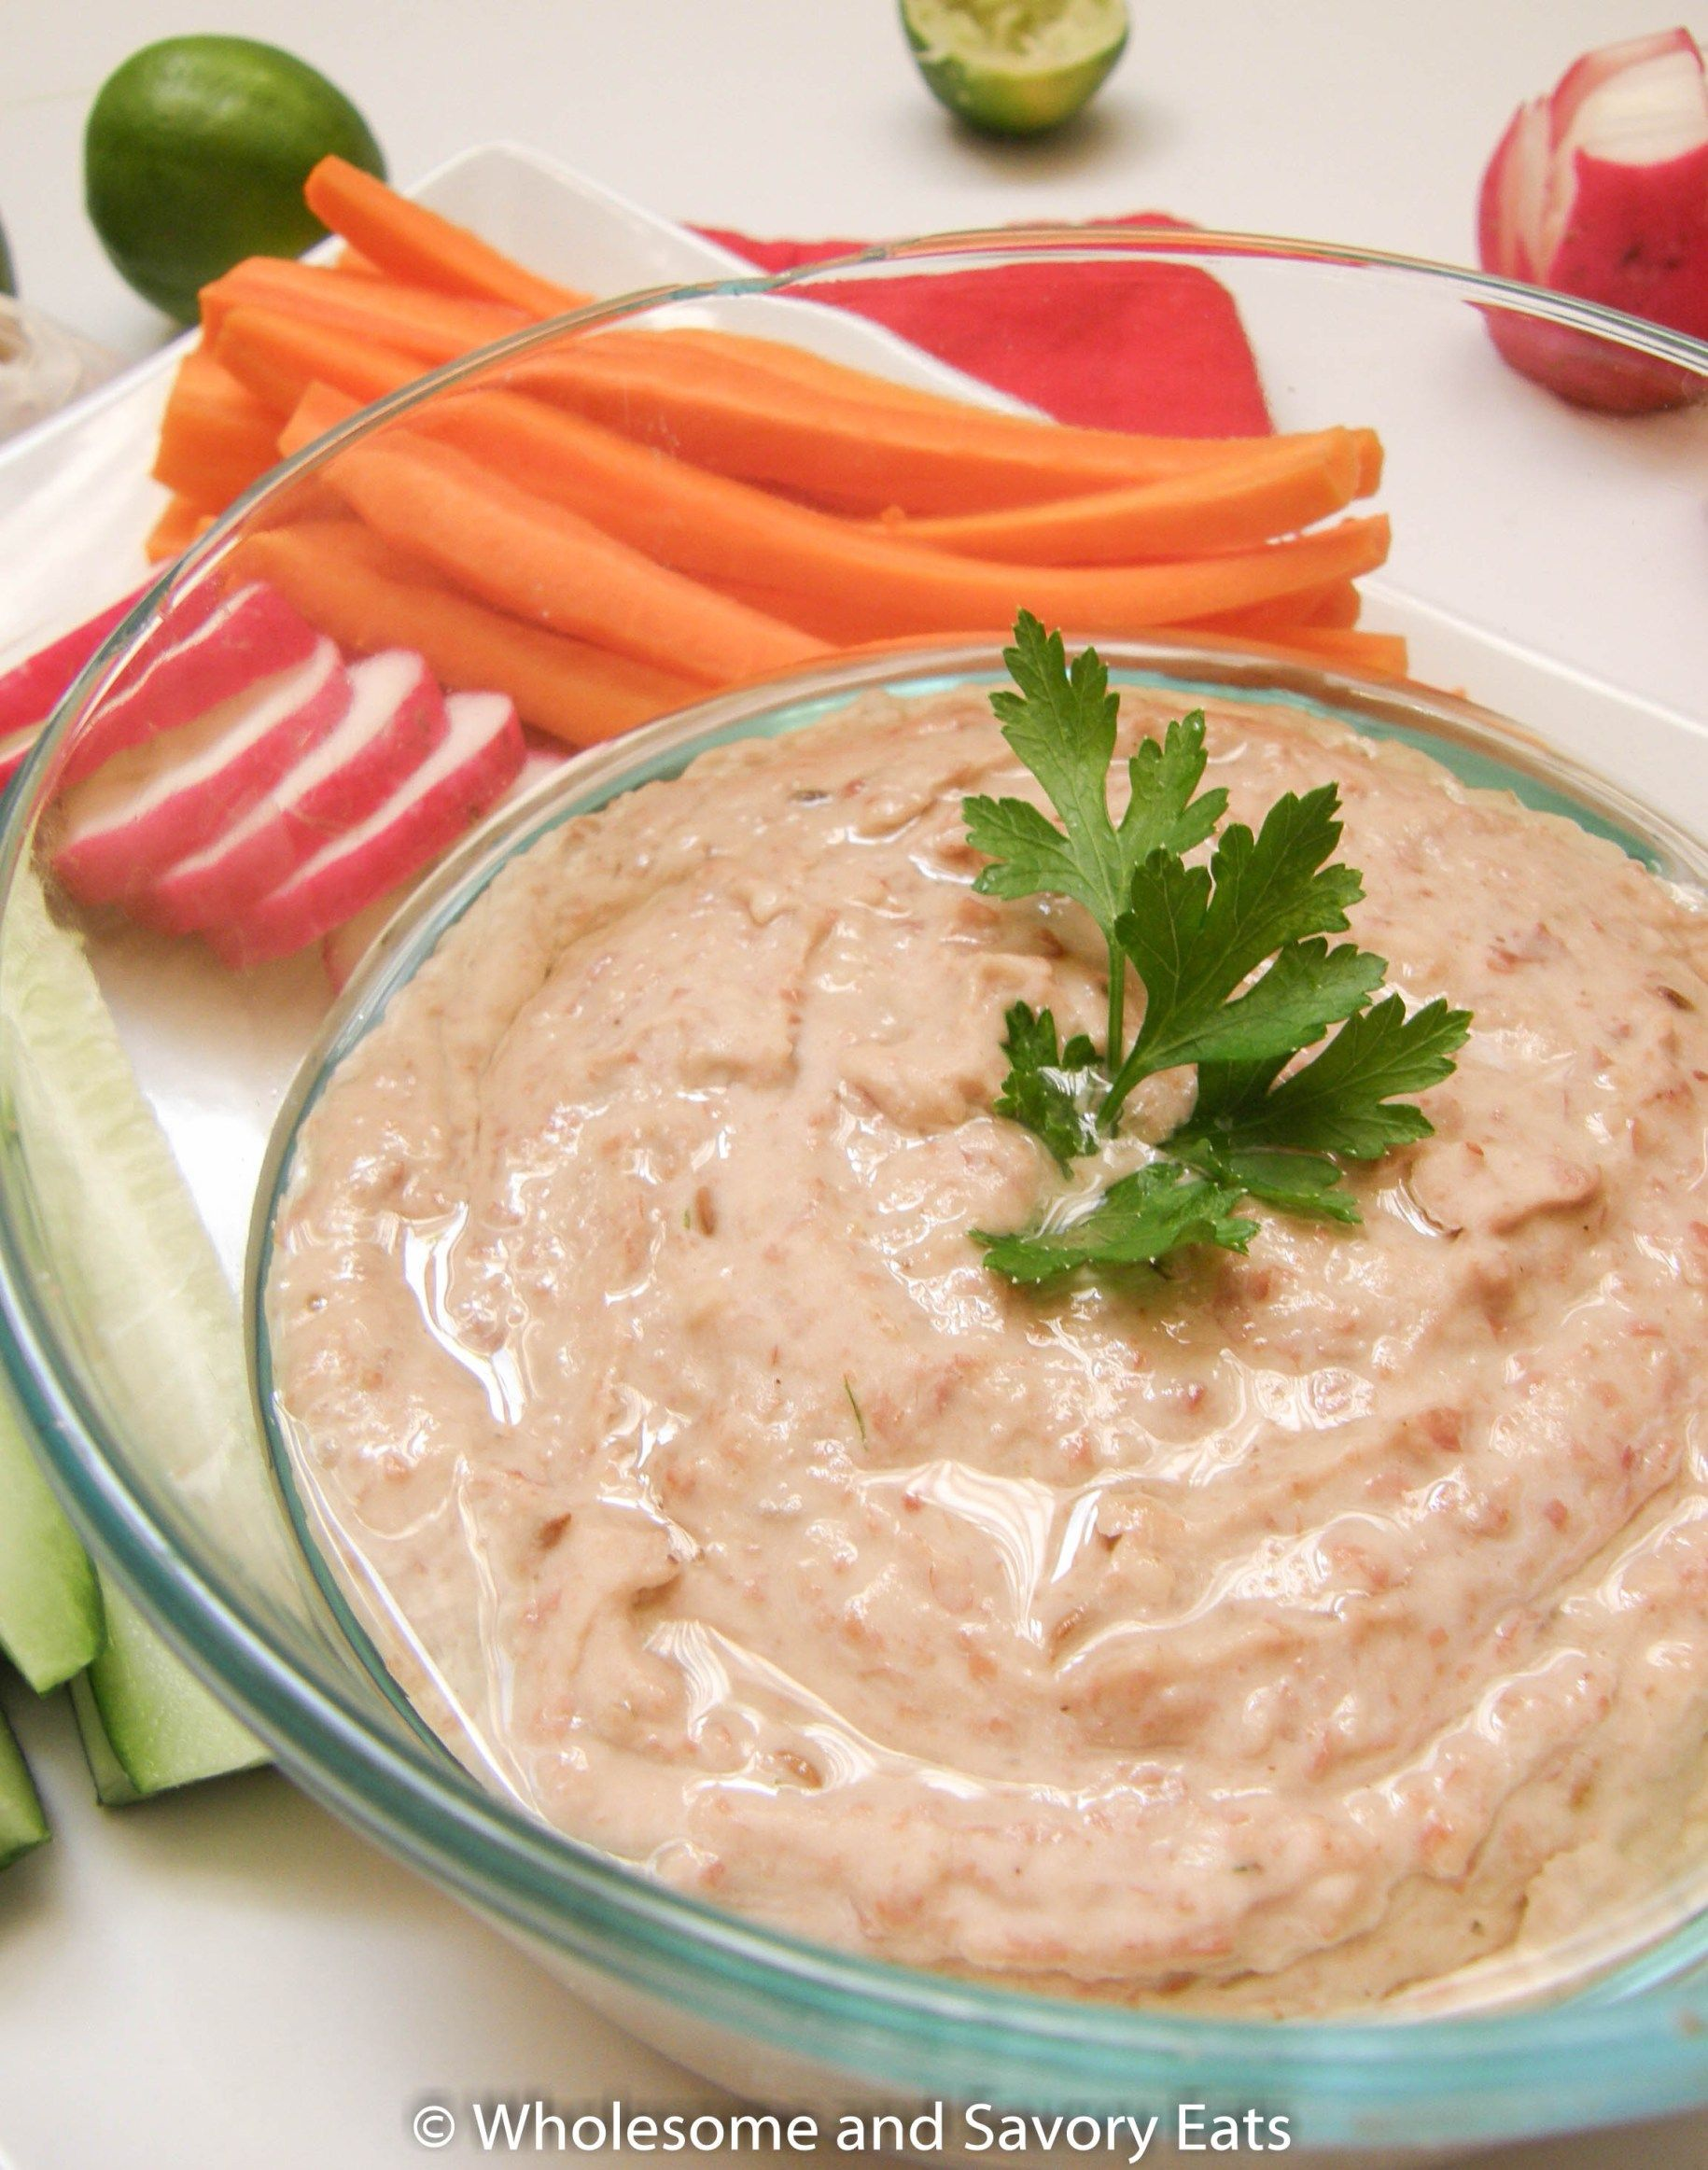 This Meatless Monday: Red Kidney Bean Hummus with Toasted Cumin Seeds is great when you simply want something that is nutritious, quick and easy.